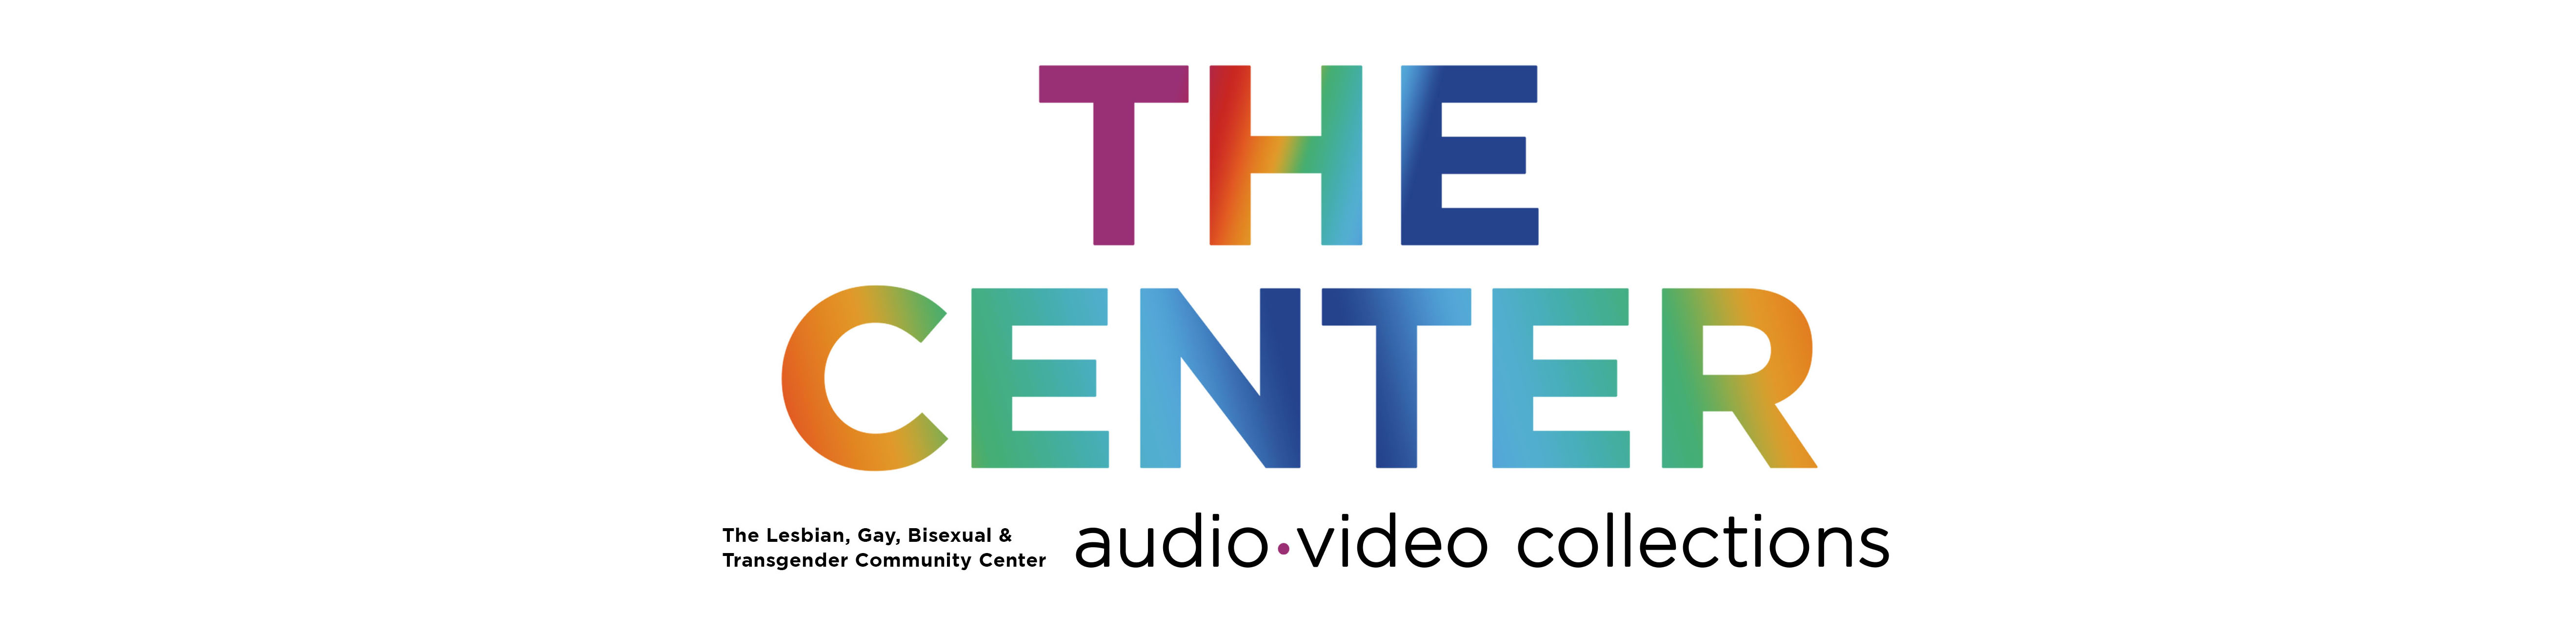 The Gay Center Audio/Video Collections